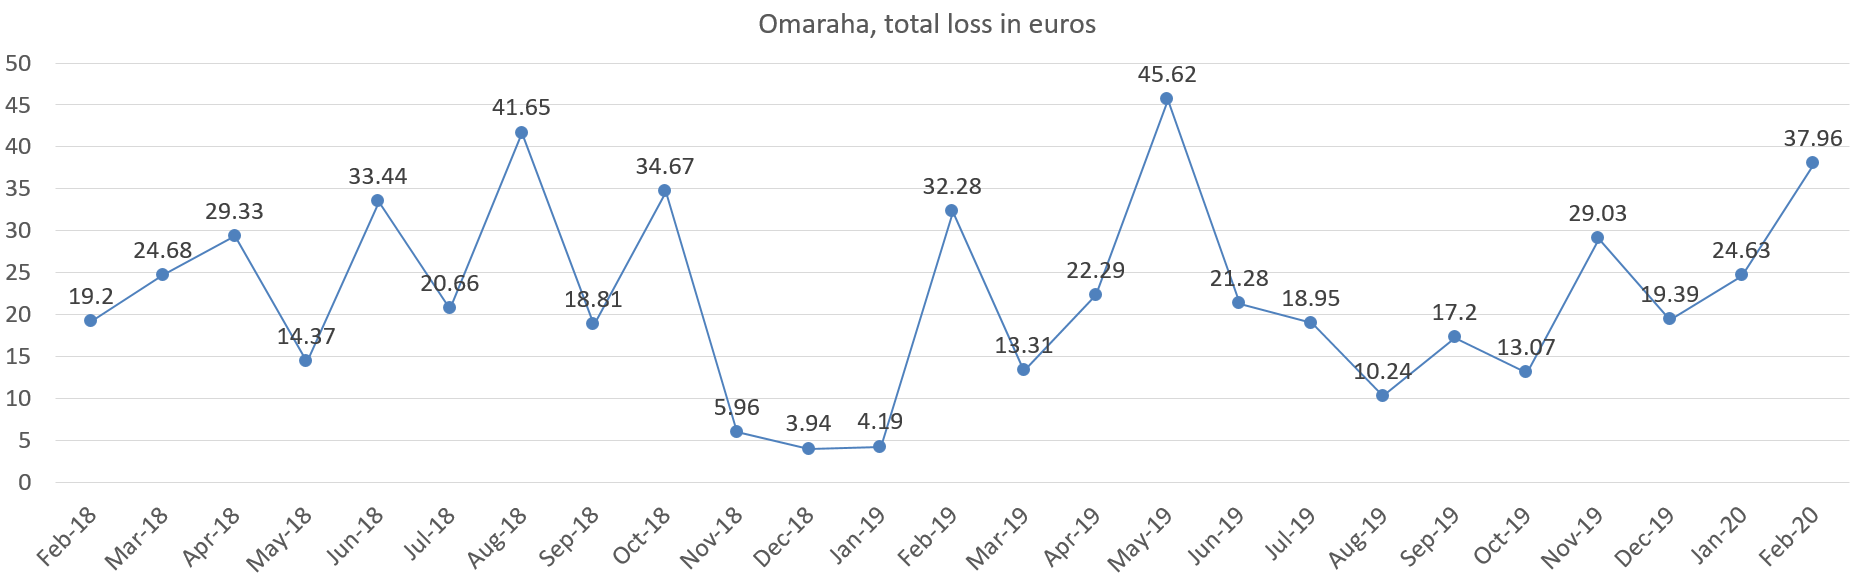 Total loss from Omaraha in euros february 2020